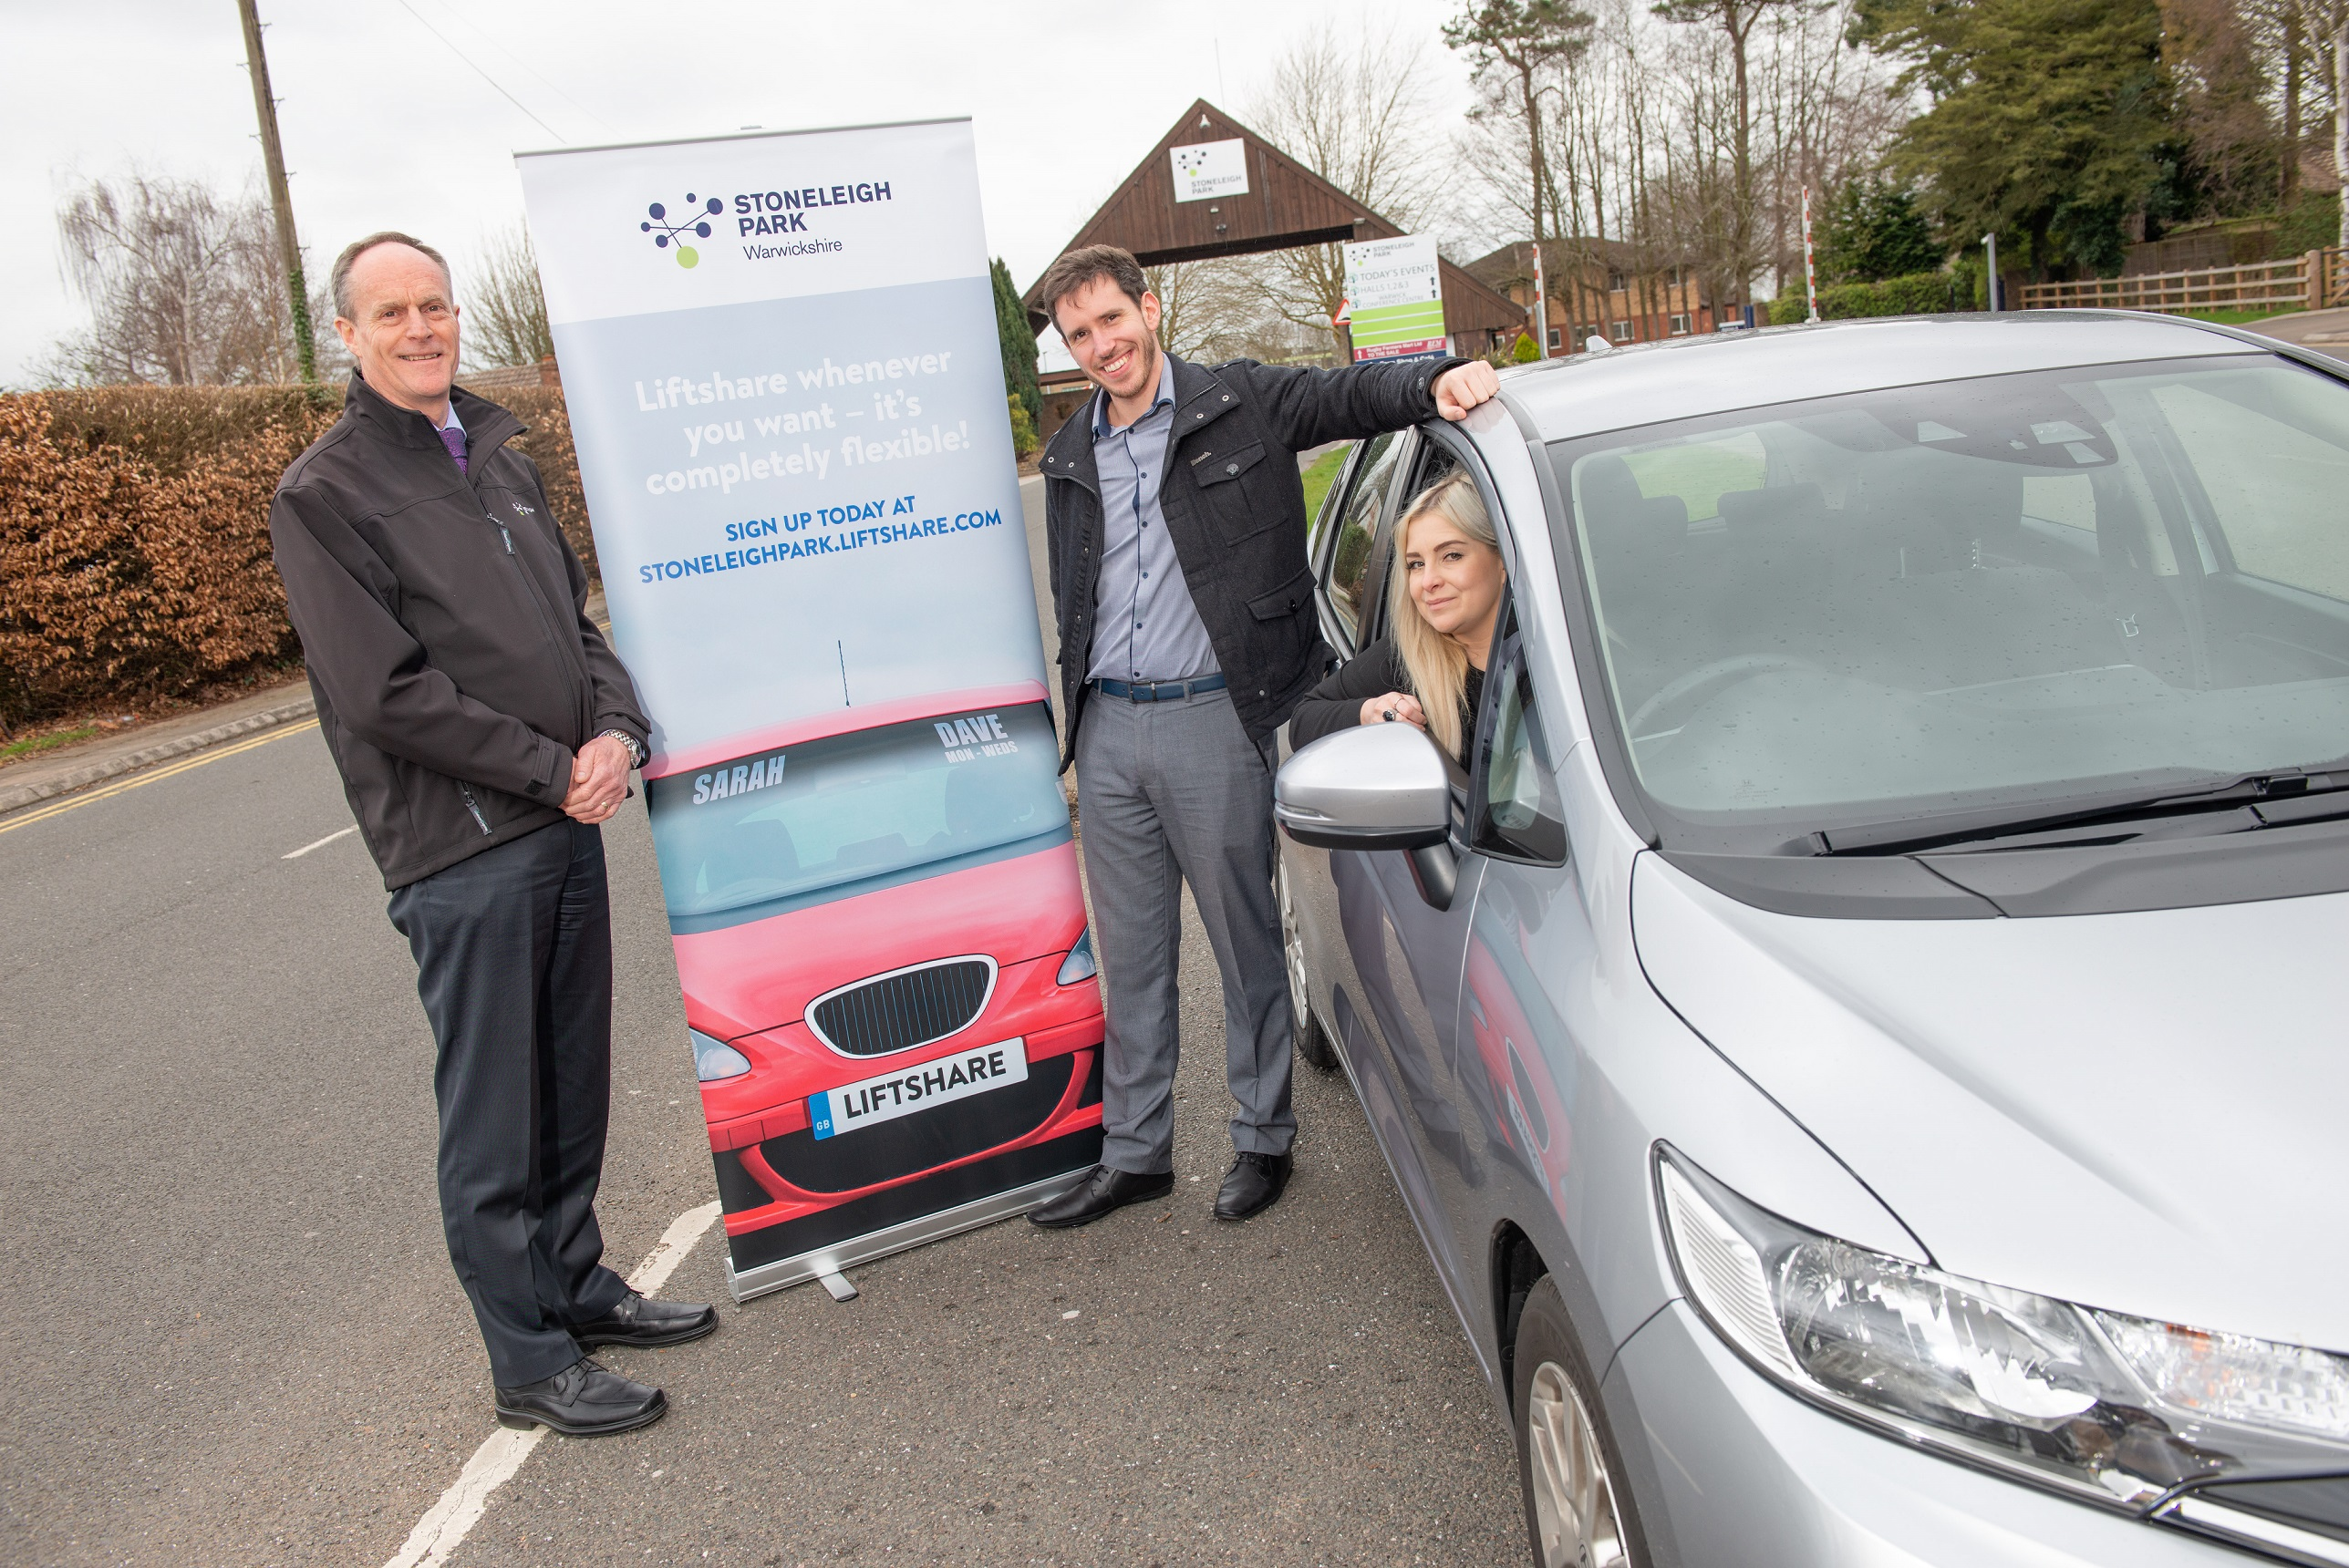 Stoneleigh Park announces car-sharing scheme